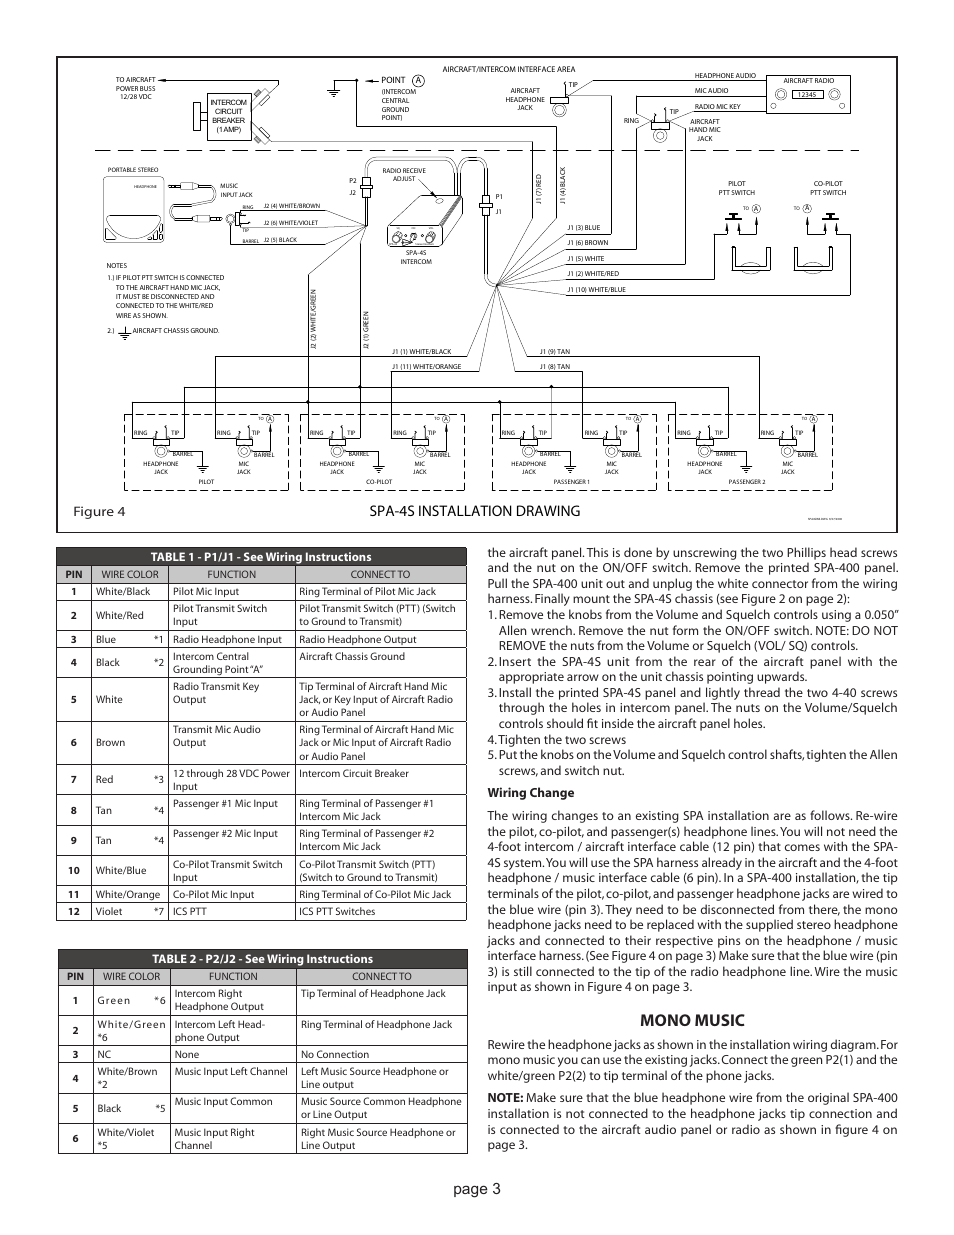 Sigtronics Wiring Diagram Libraries Icom Computer Headset Librarymono Music Spa 4s Installation Drawing Page 3